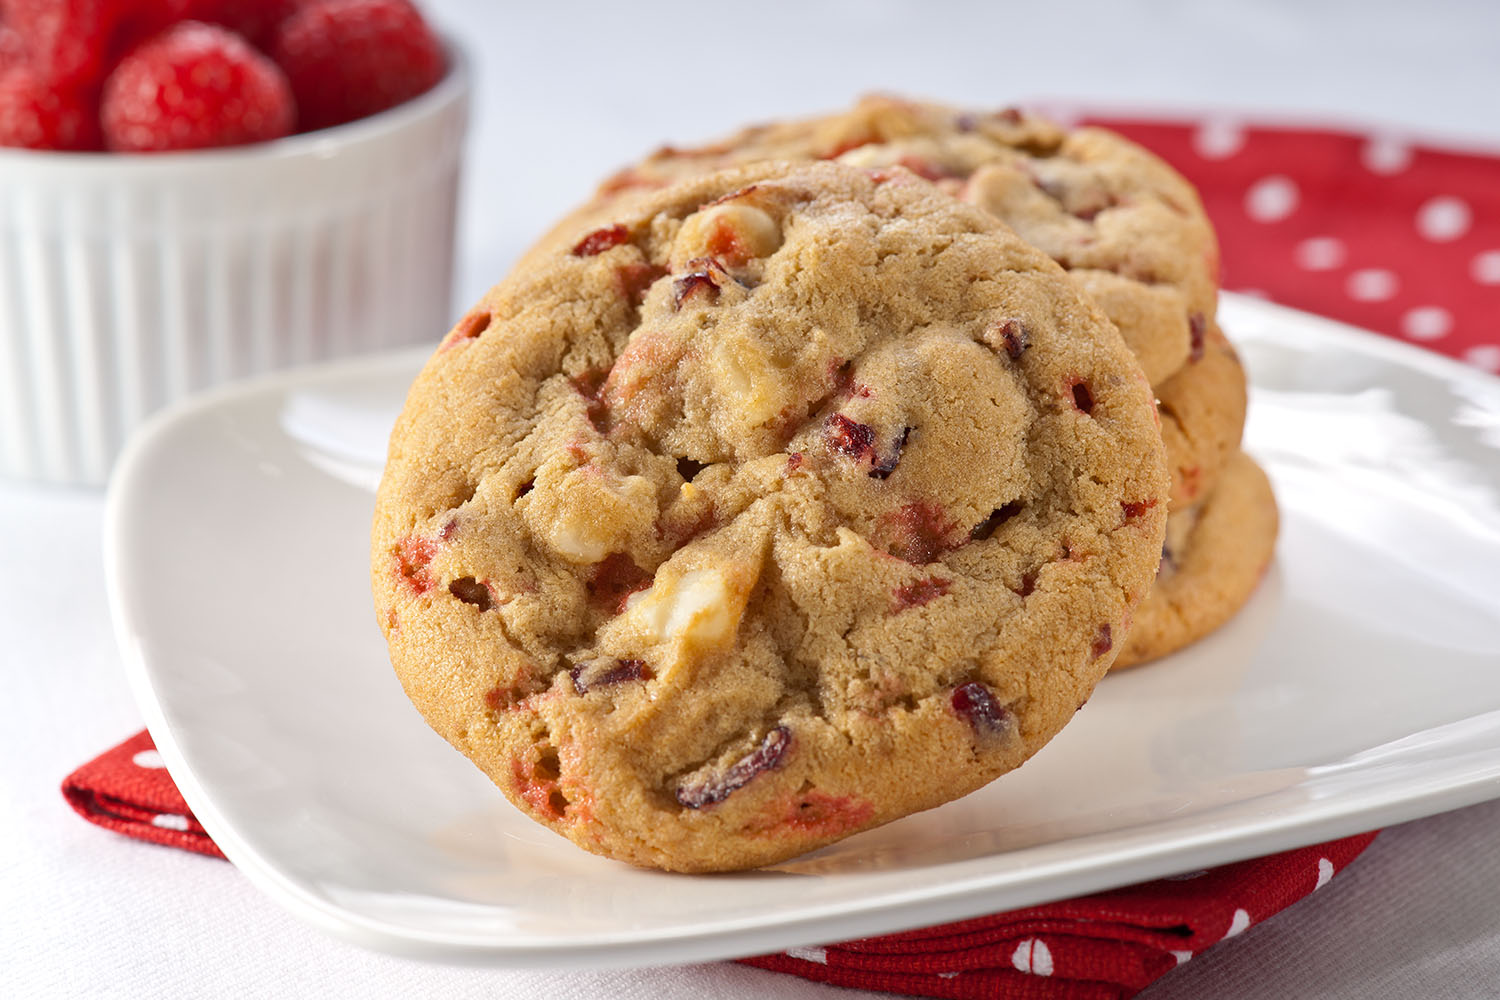 Raspberry White Chocolate - The sweetness of raspberries and the tartness of cranberries make one delicious pair, but we didn't stop there. This cookie is even better with the delicious macadamia nuts and white chocolate chips that we added for good measure.